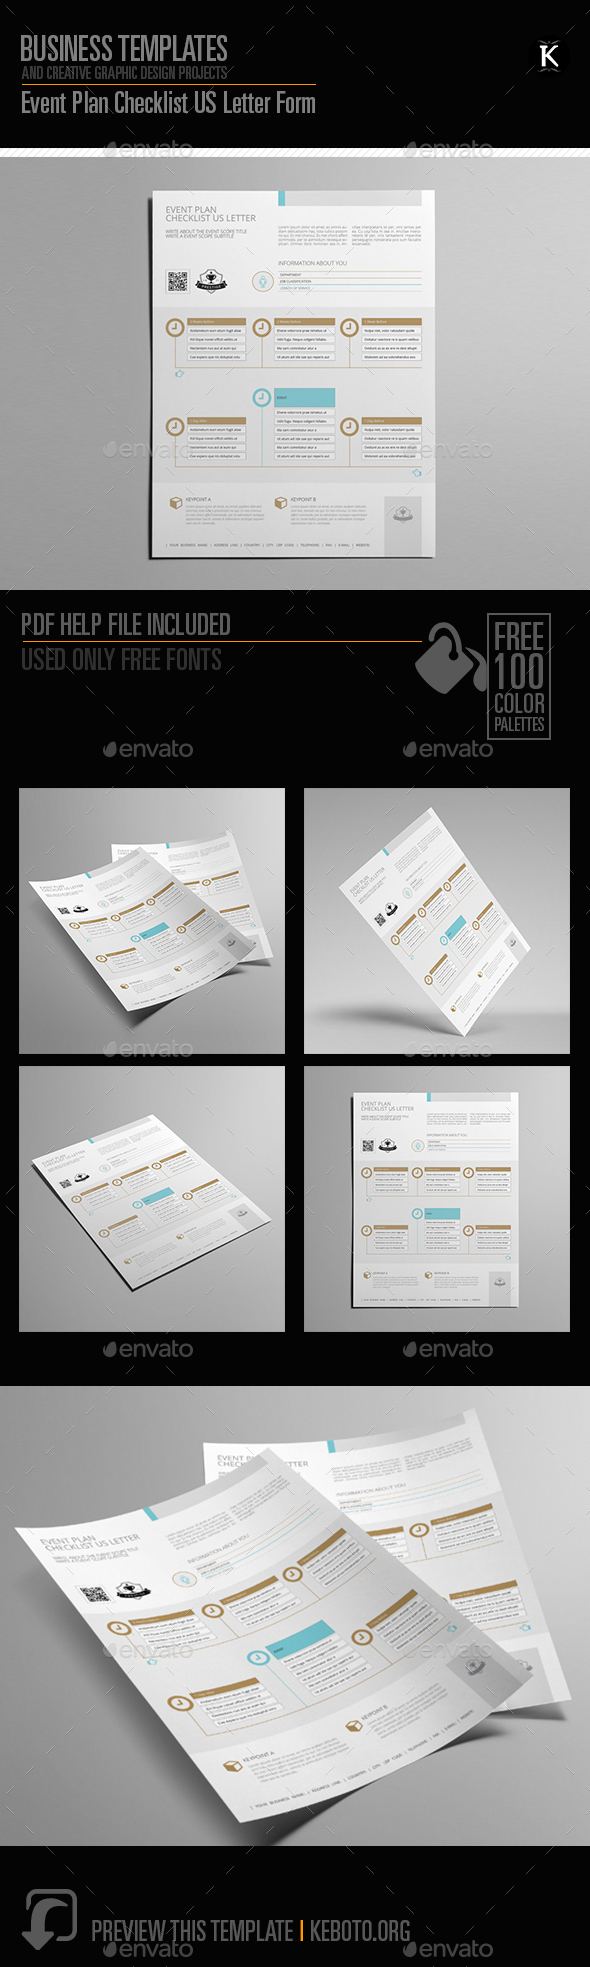 Event Plan Checklist US Letter Form - Miscellaneous Print Templates